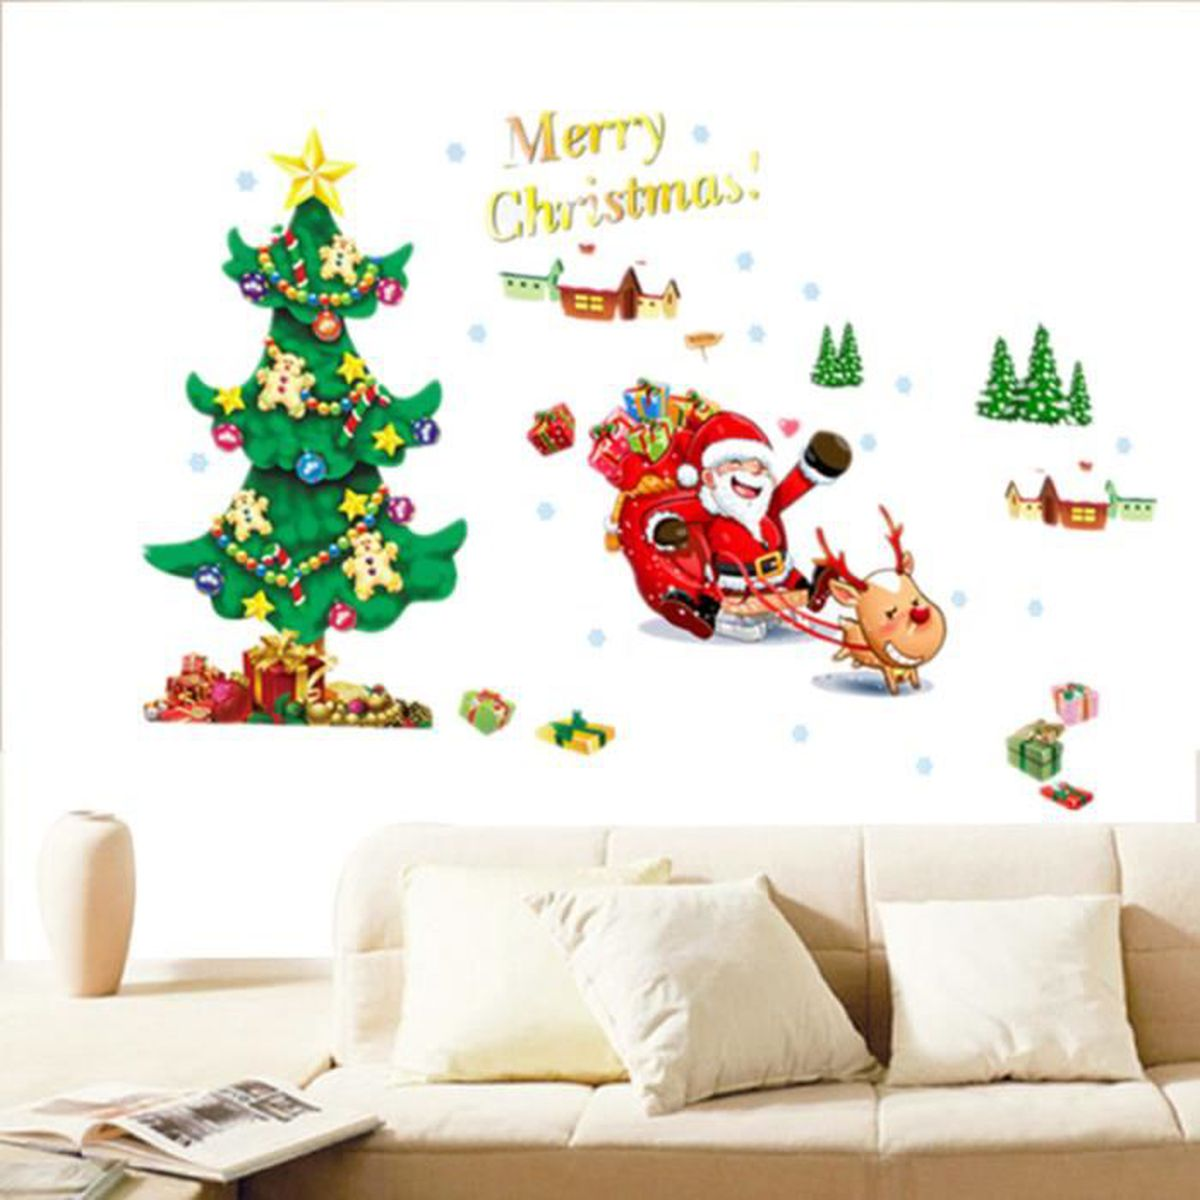 le p re no l arbre sapin sticker mur autocollant mural pour decor f te vitrine achat vente. Black Bedroom Furniture Sets. Home Design Ideas